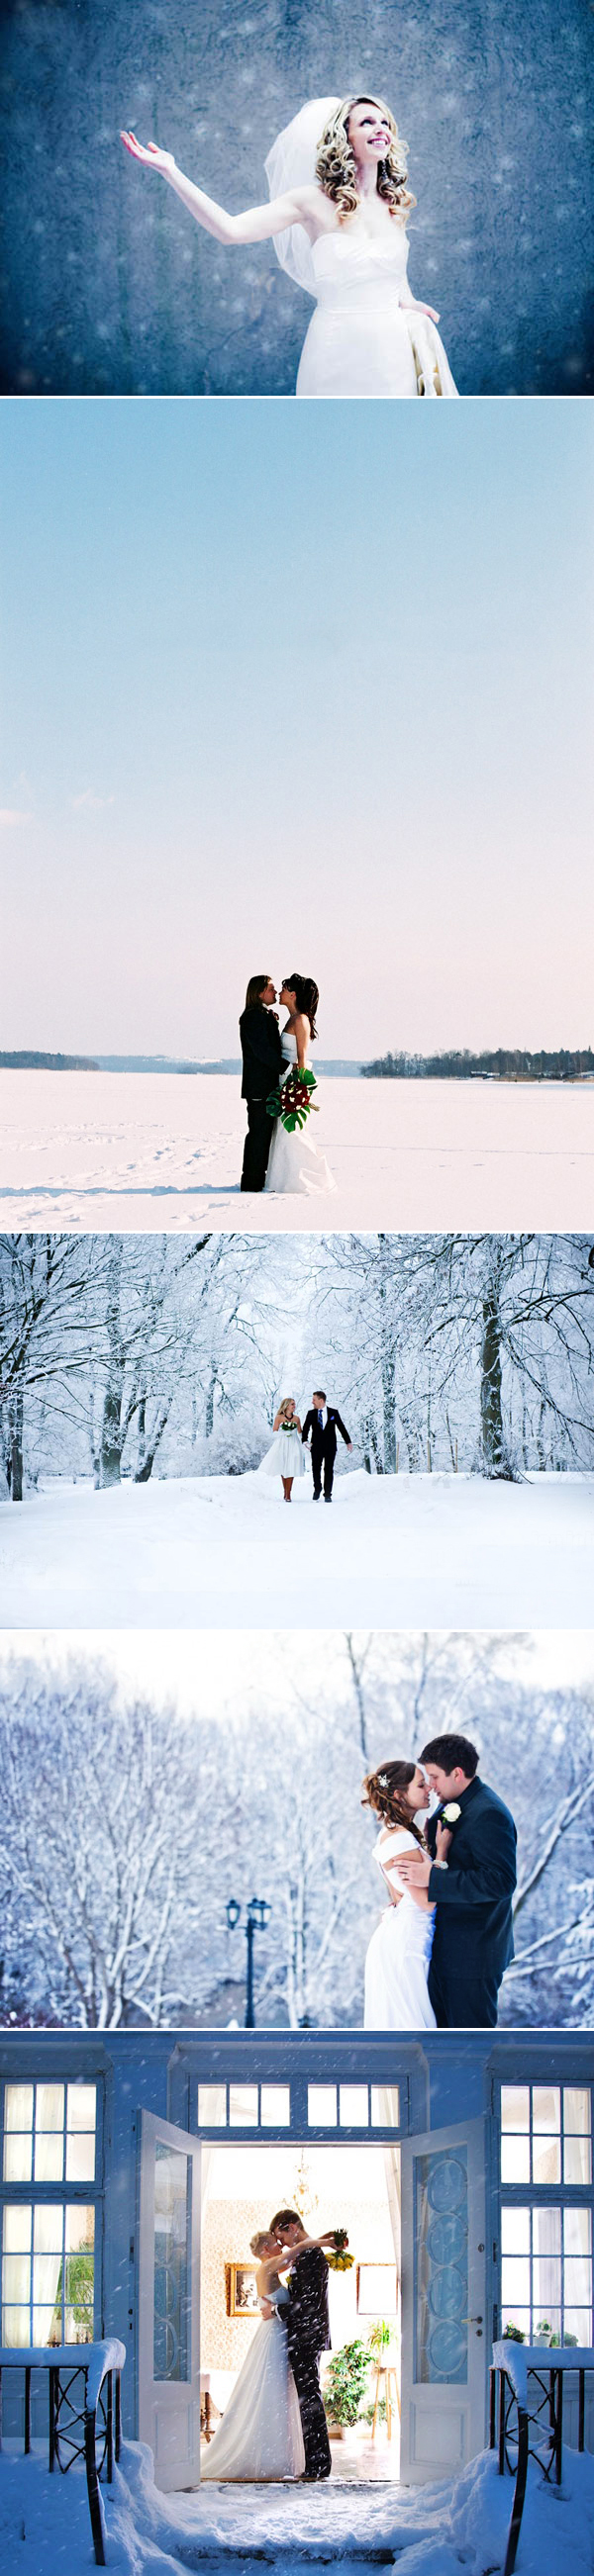 winter-wedding02-blue